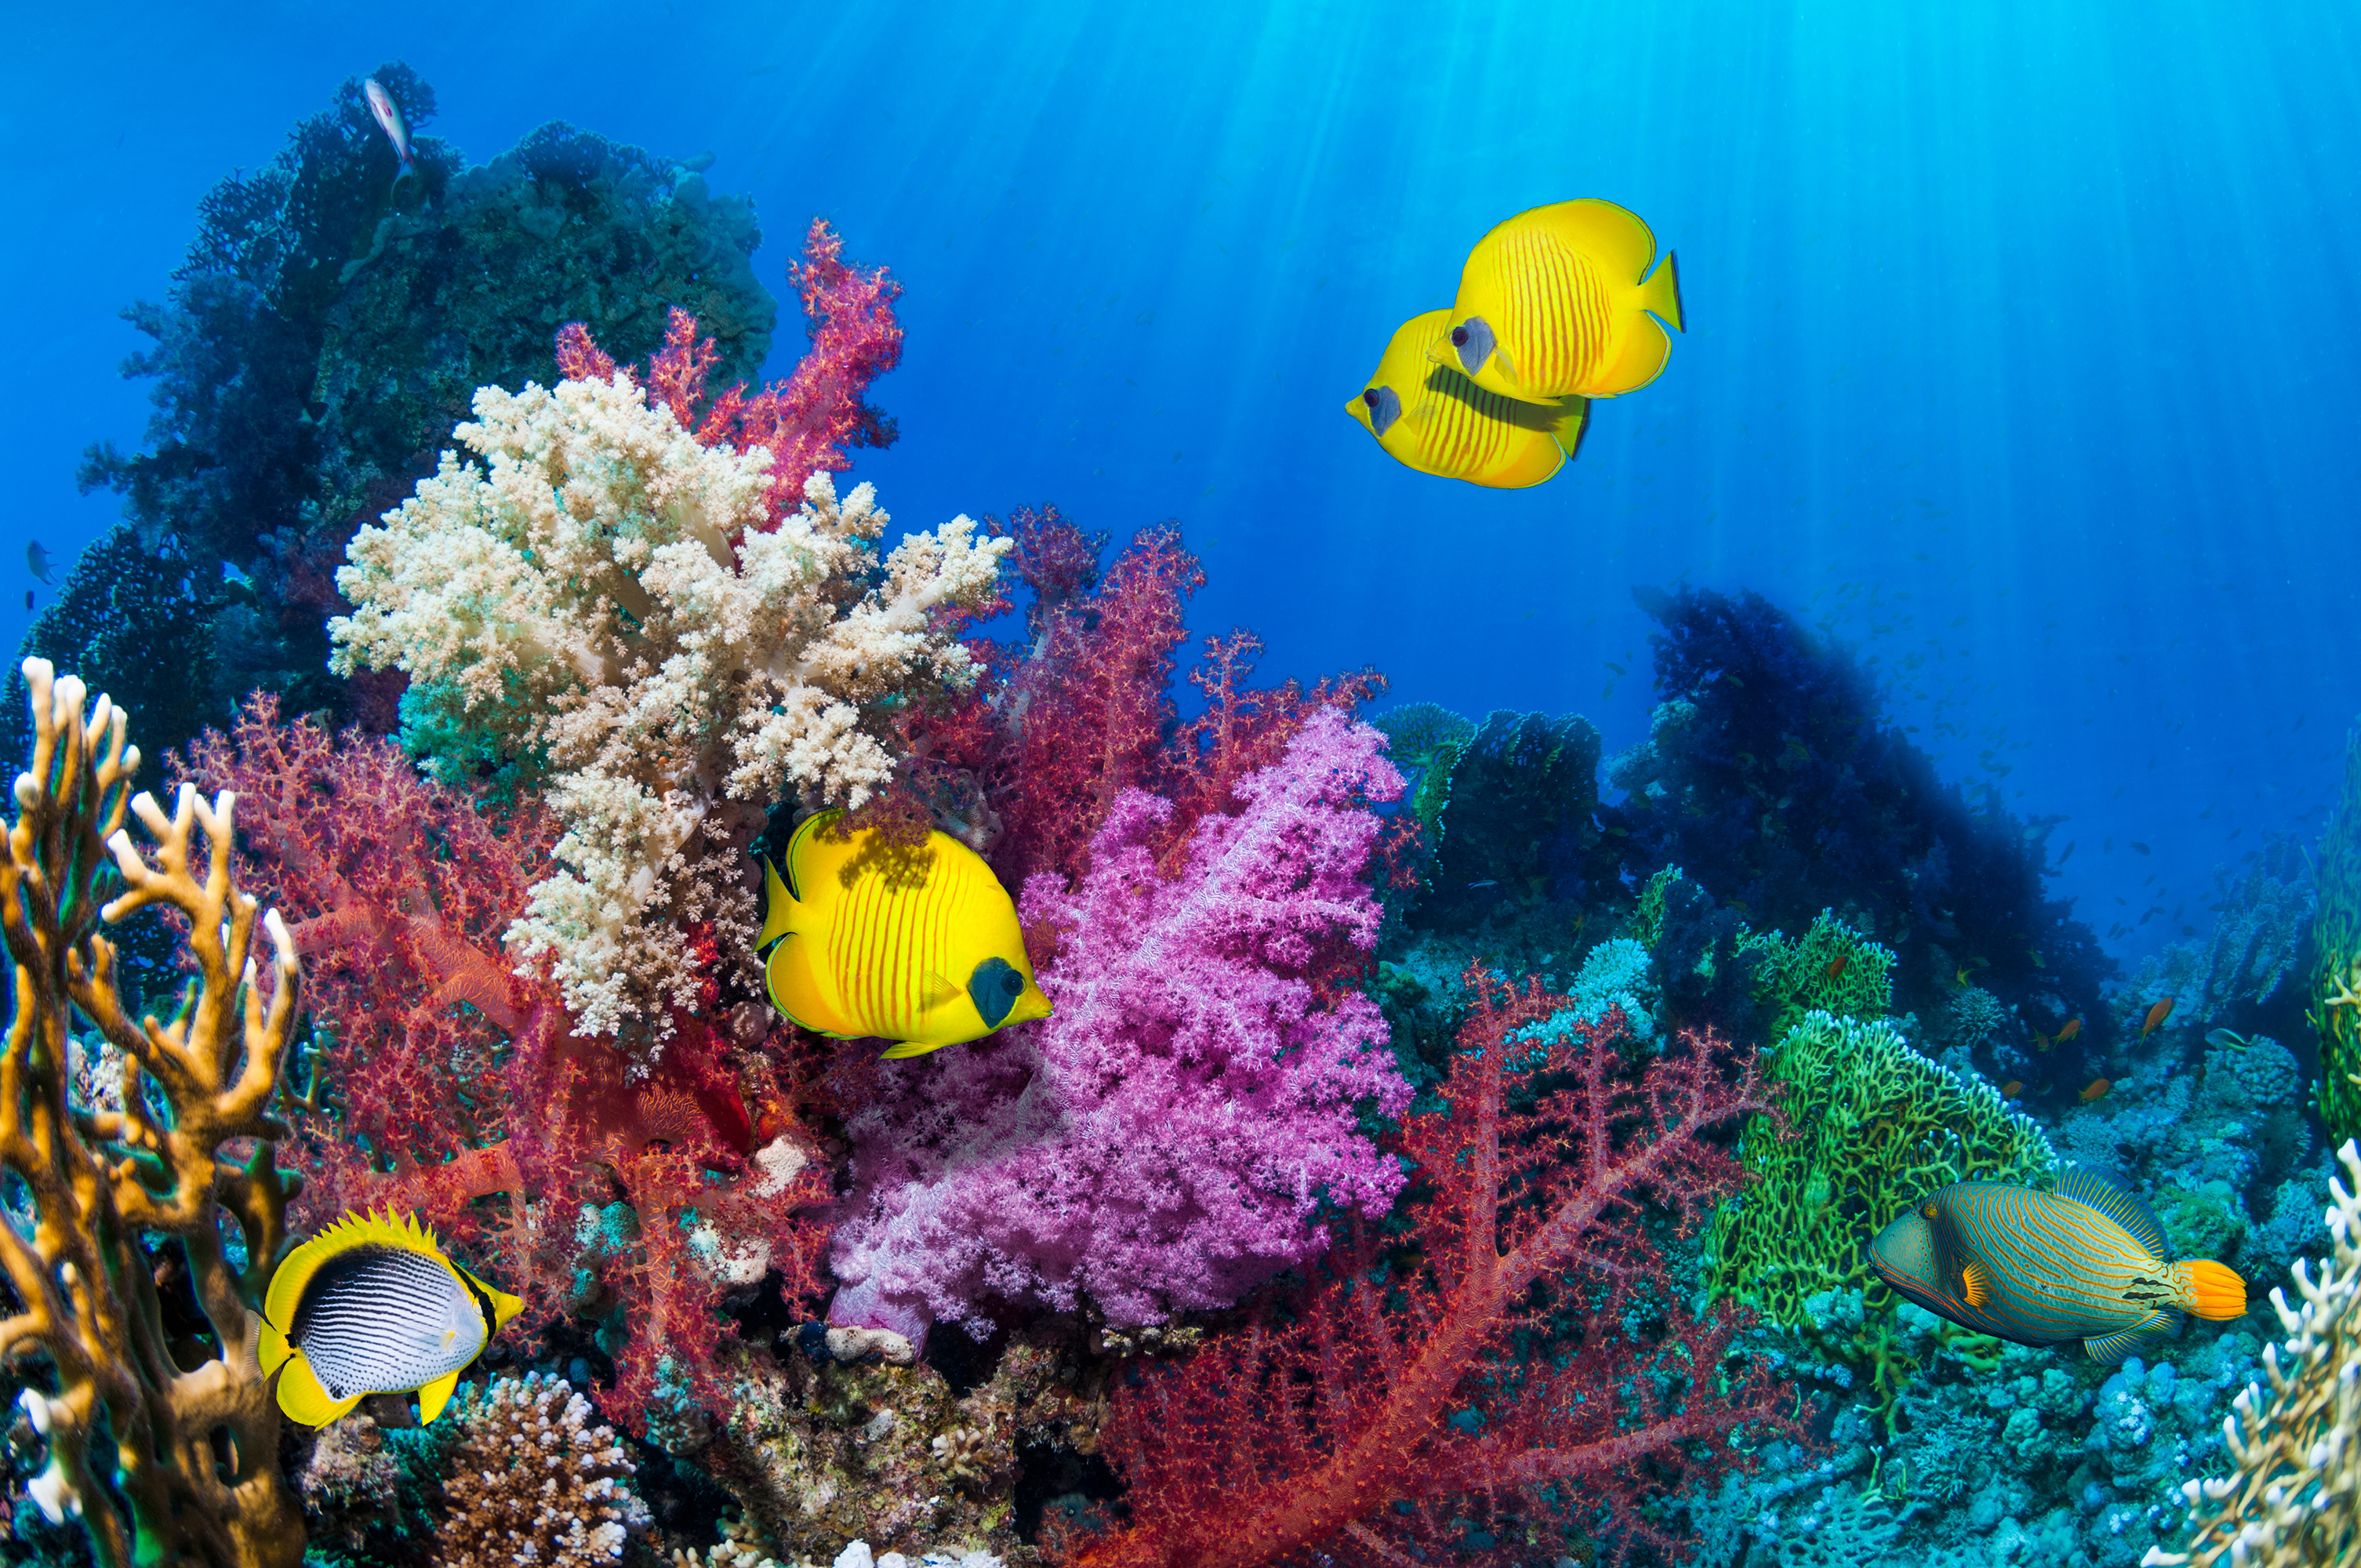 Scientists Say Coral Reefs Are Moving Away from Tropical Waters Due to Climate Change